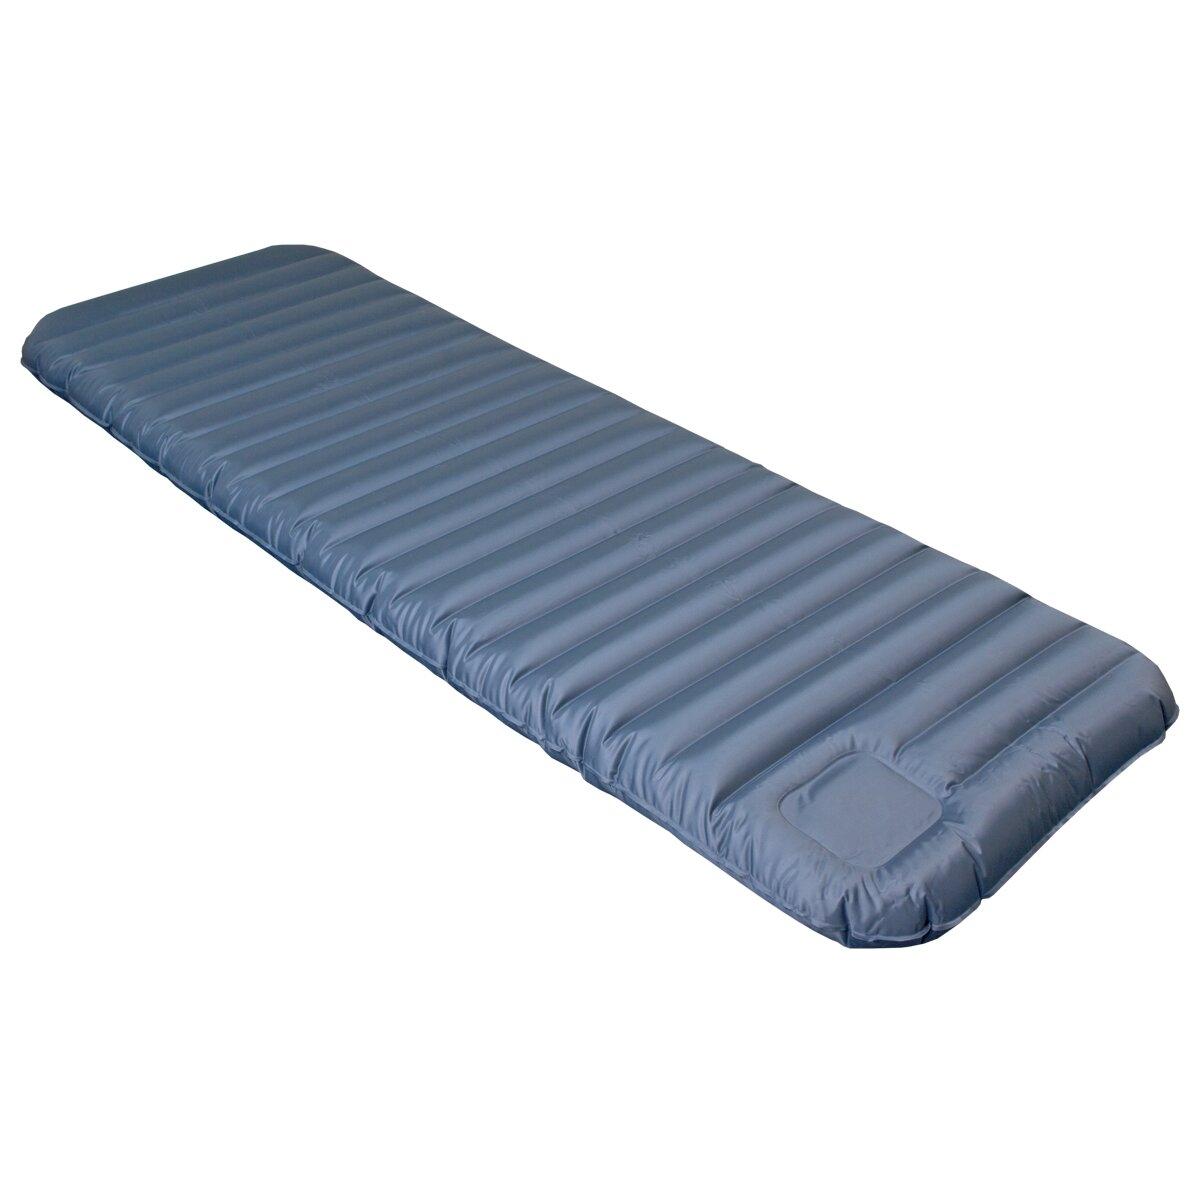 Altimair Frontier Camping 5 Quot Air Mattress With Foot Pump